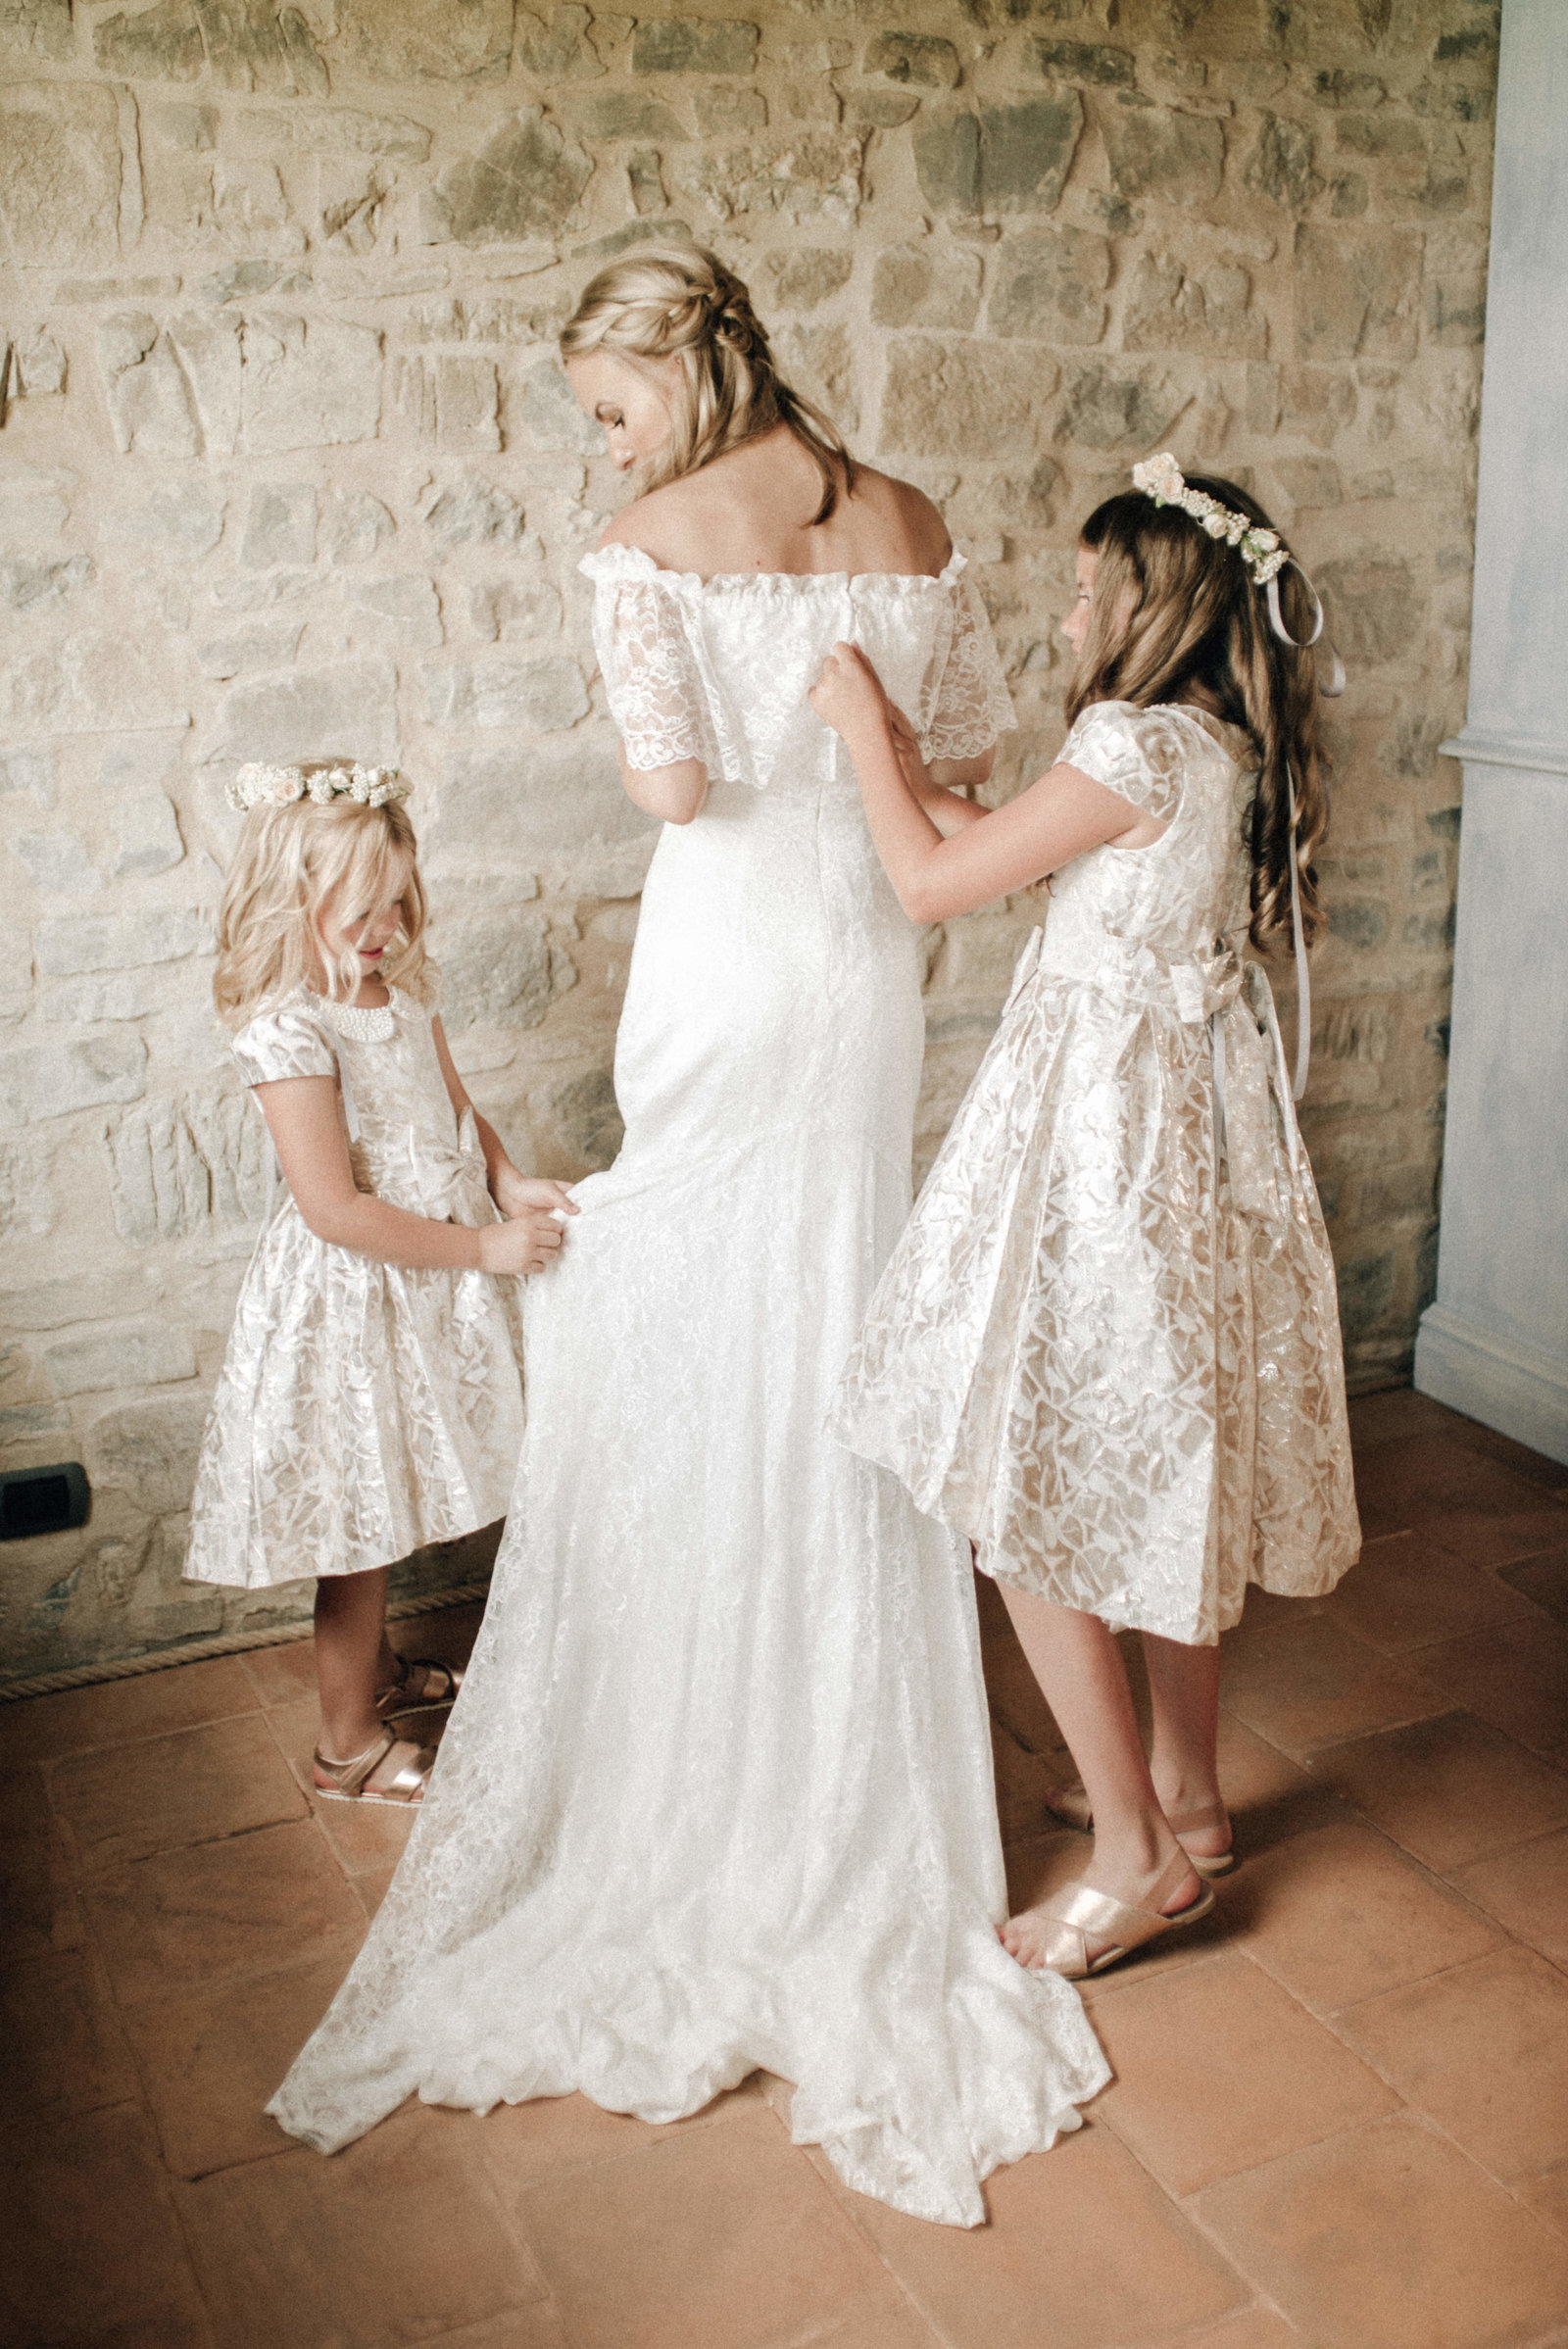 Josephine_Micke_Tuscany_Wedding_GraceAndBlush_Photography (120 von 821)